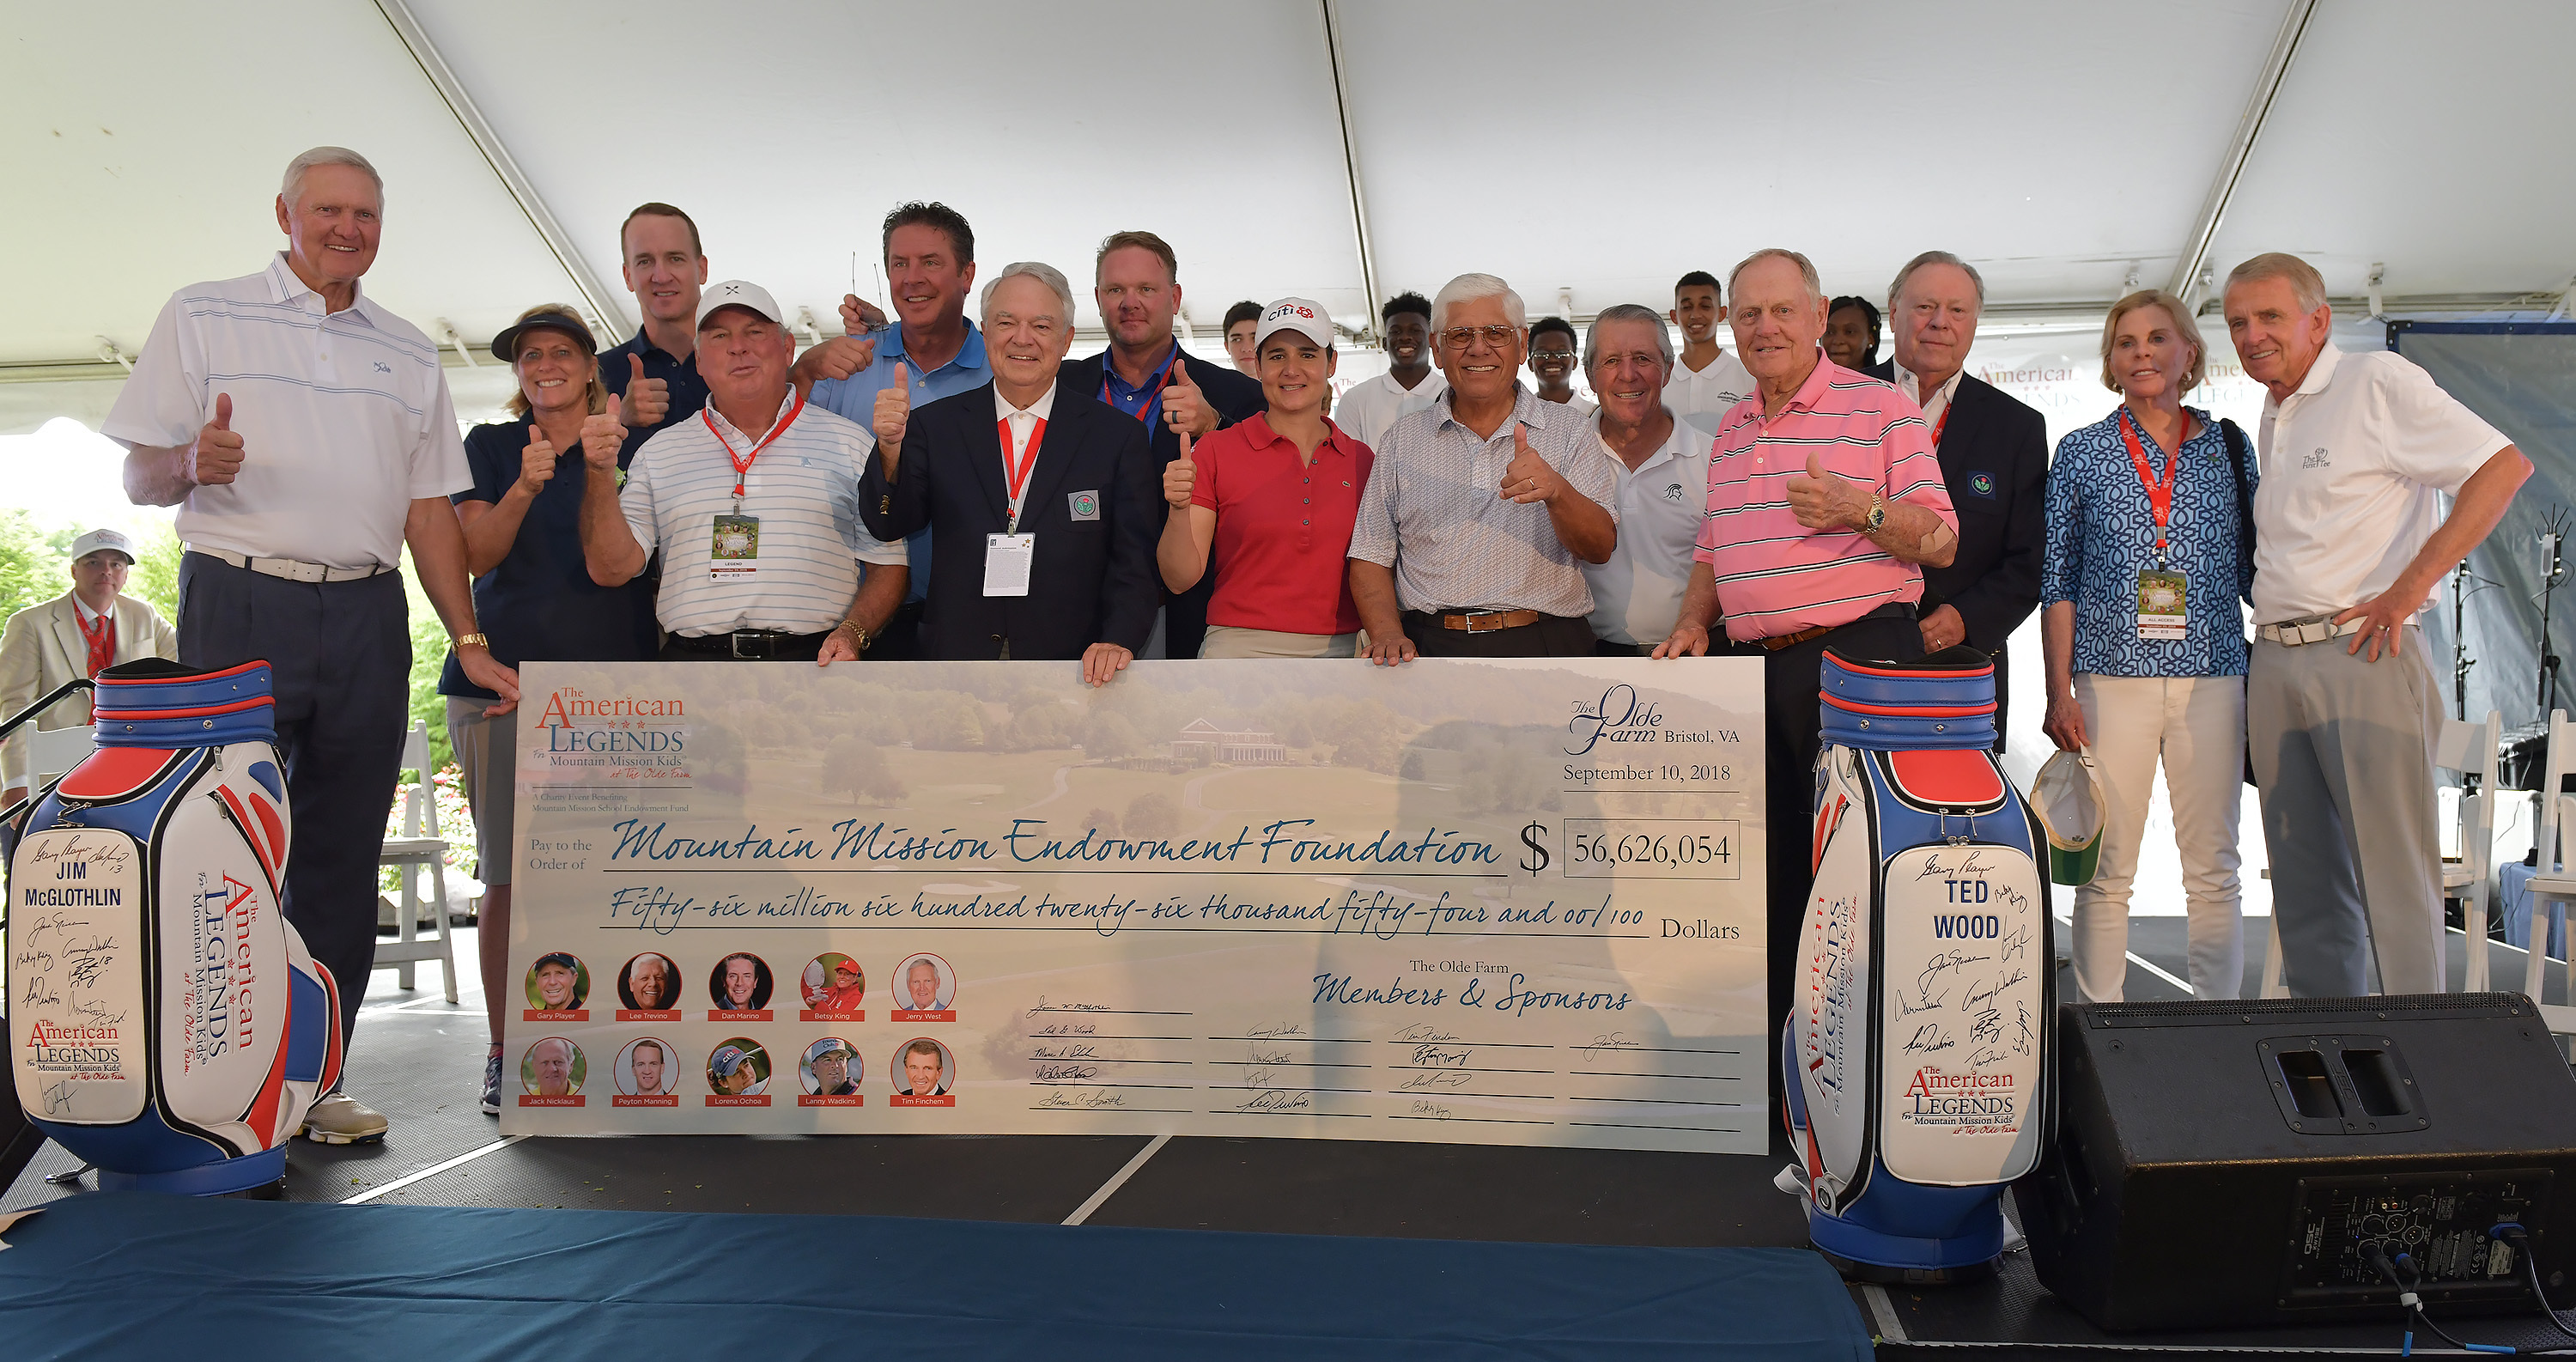 The American Legends Golf Tournament Drives $56 6 Million in